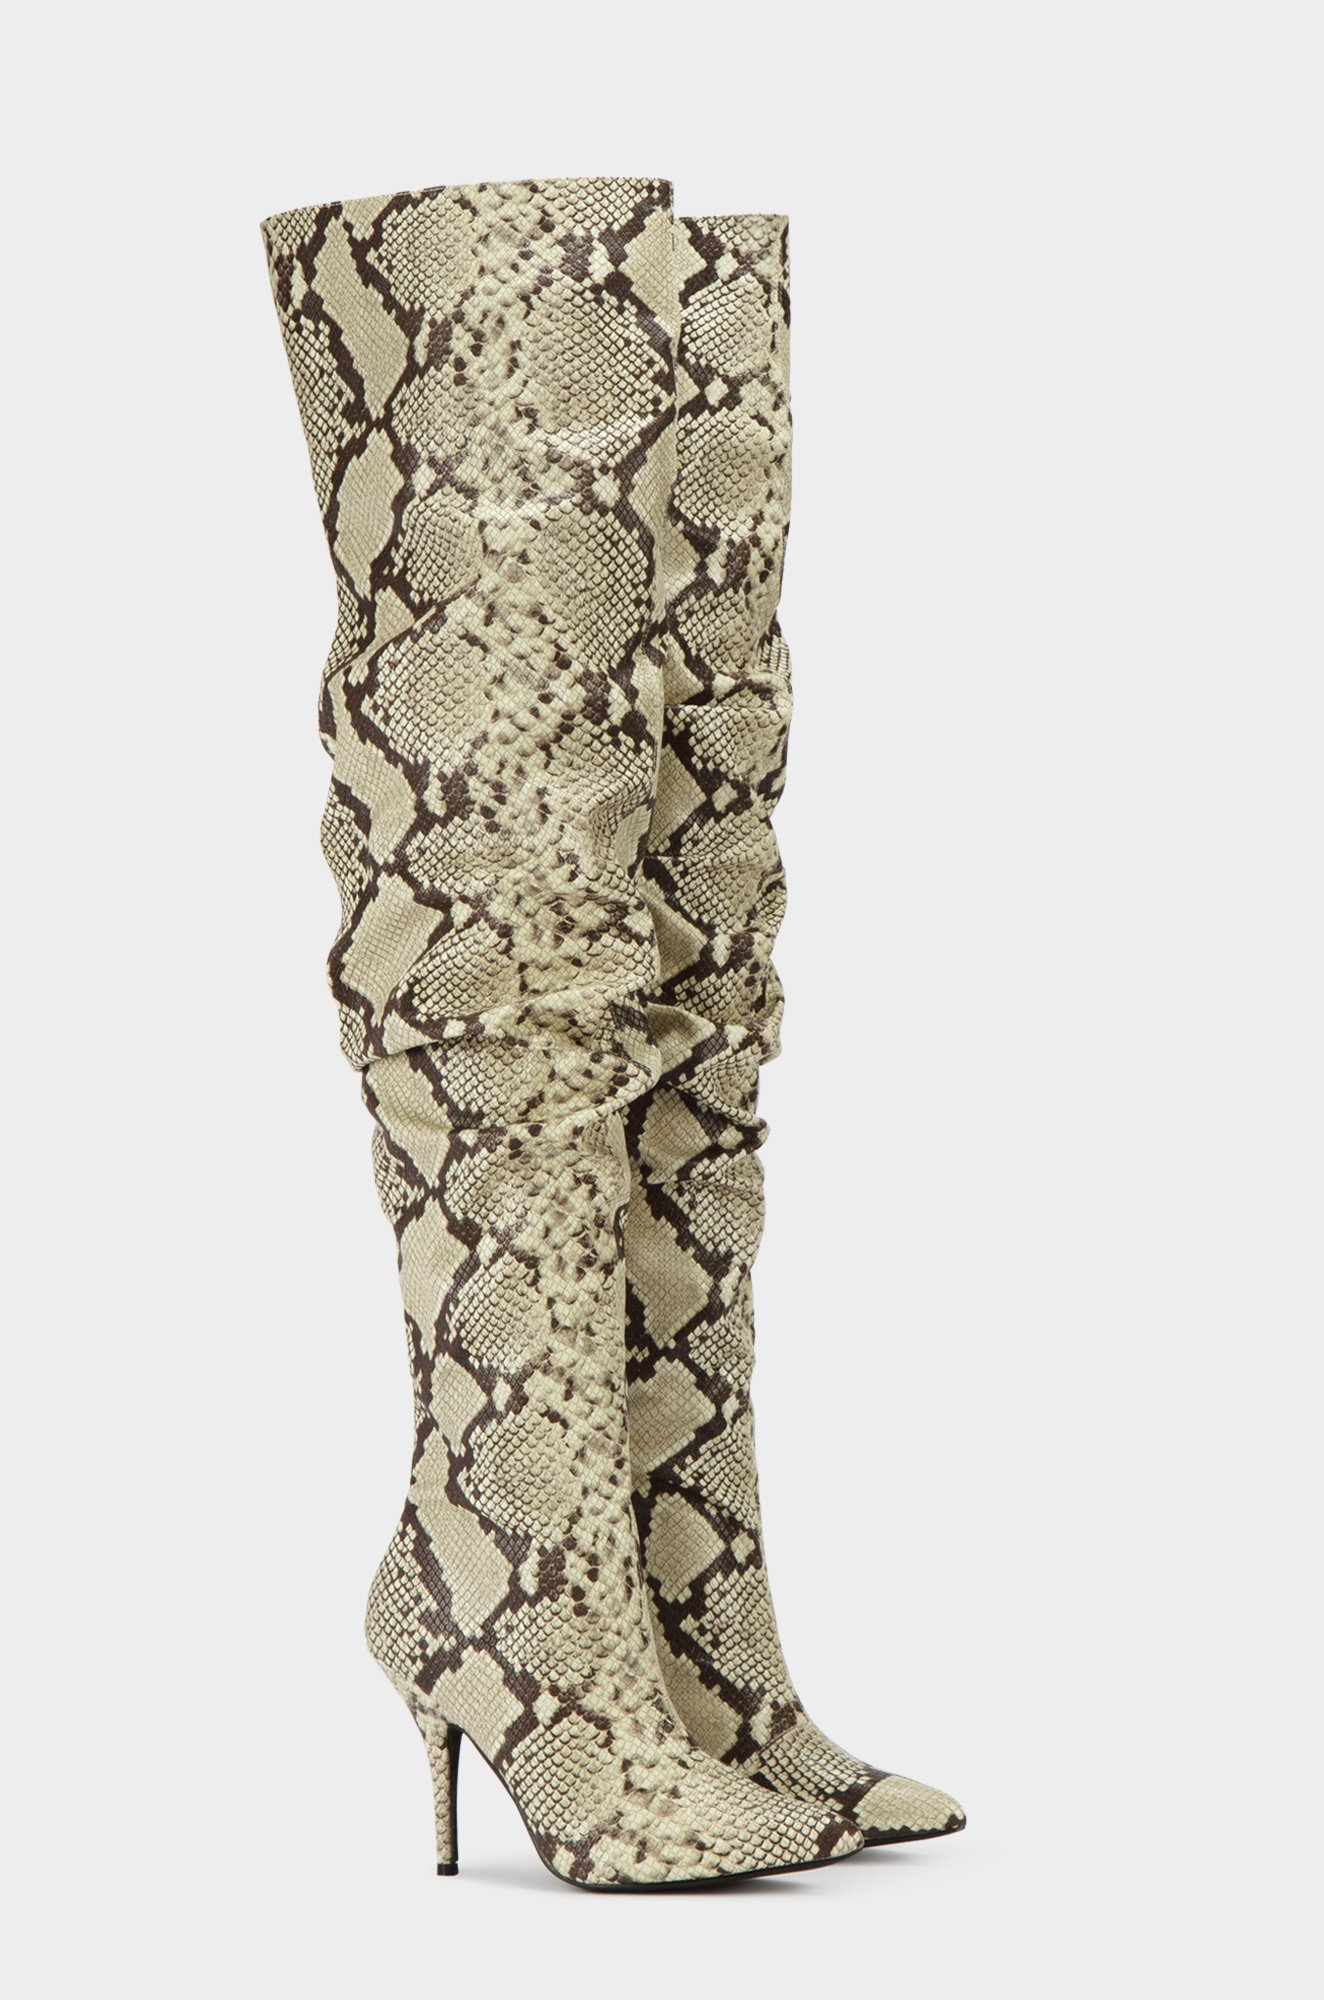 Cape-Robbin-Bown-Snake-Thigh-High-Slouch-Pointed-Toe-Over-The-Knee-Stiletto-Boot thumbnail 47